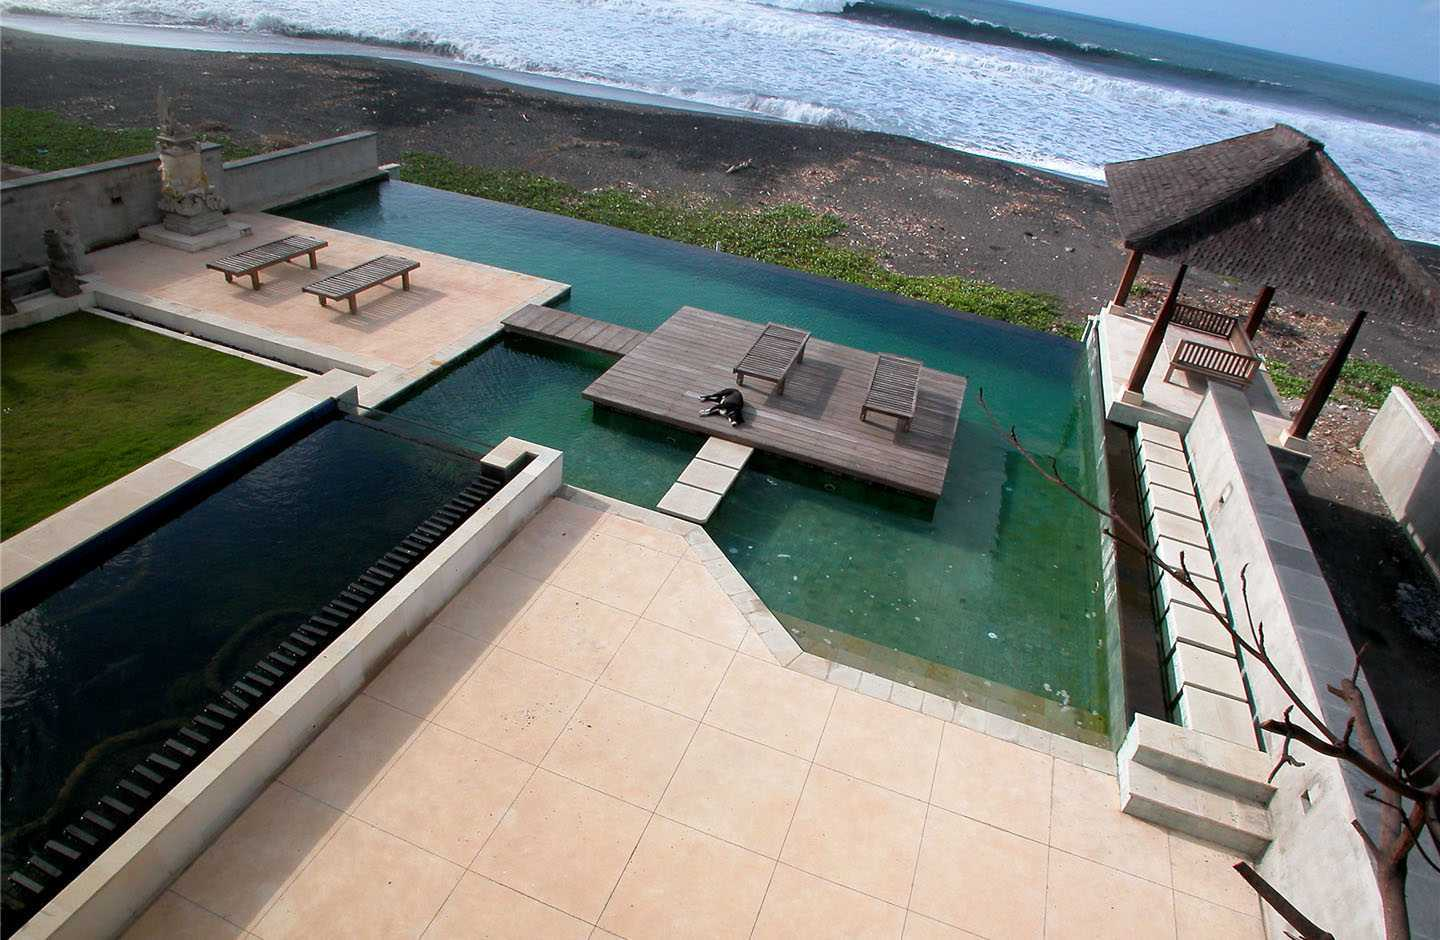 Agung Budi Raharsa | Architecture & Engineering Shark House - Bali Bali, Indonesia Ketewel, Bali Pool  12443